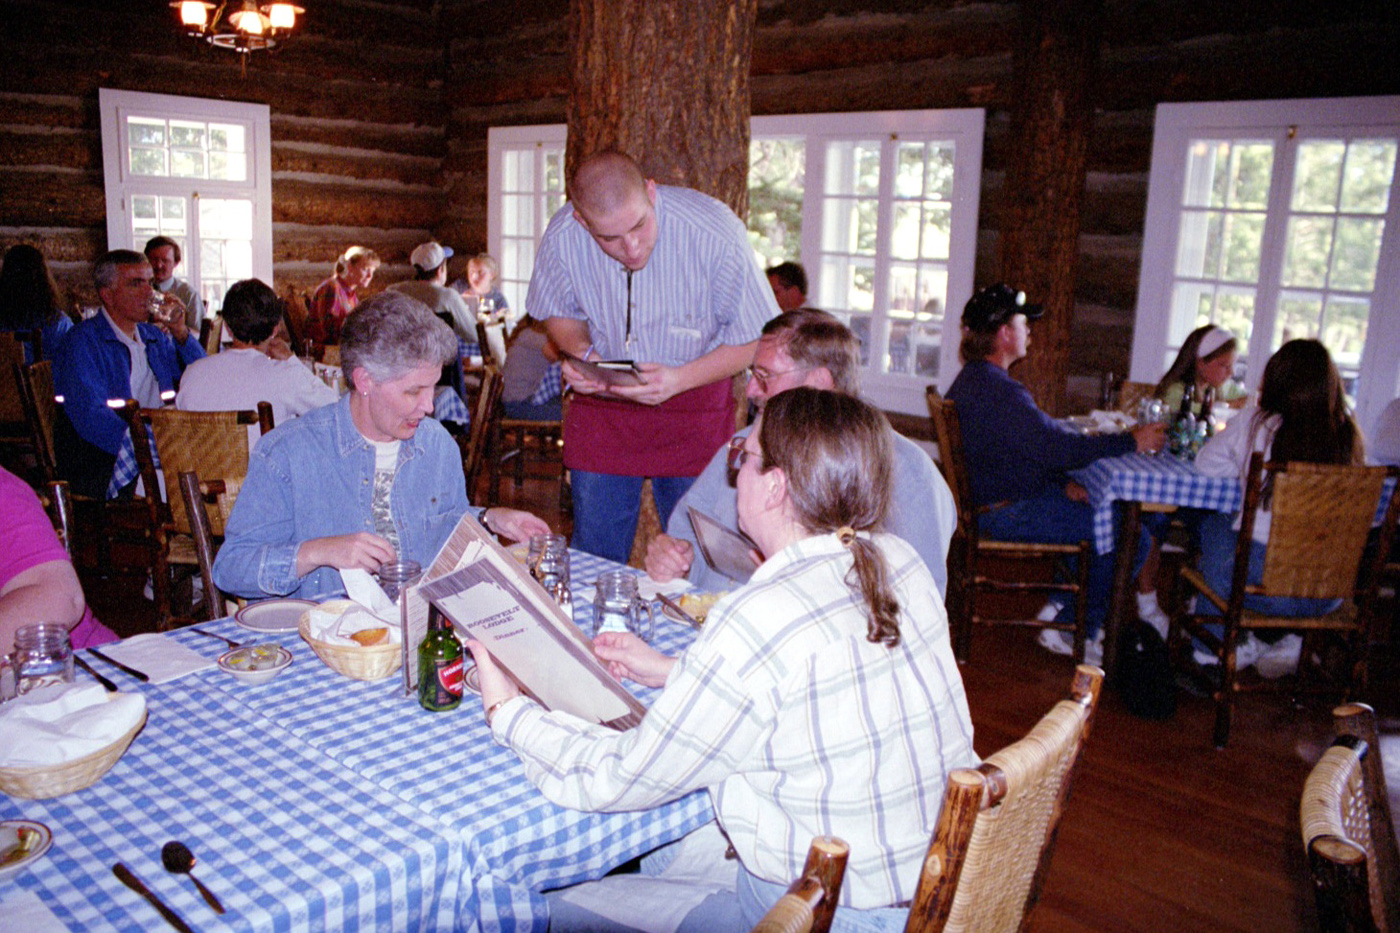 Roosevelt Lodge Dining Room in Yellowstone National Park by John William Uhler © Copyright All Rights Reserved